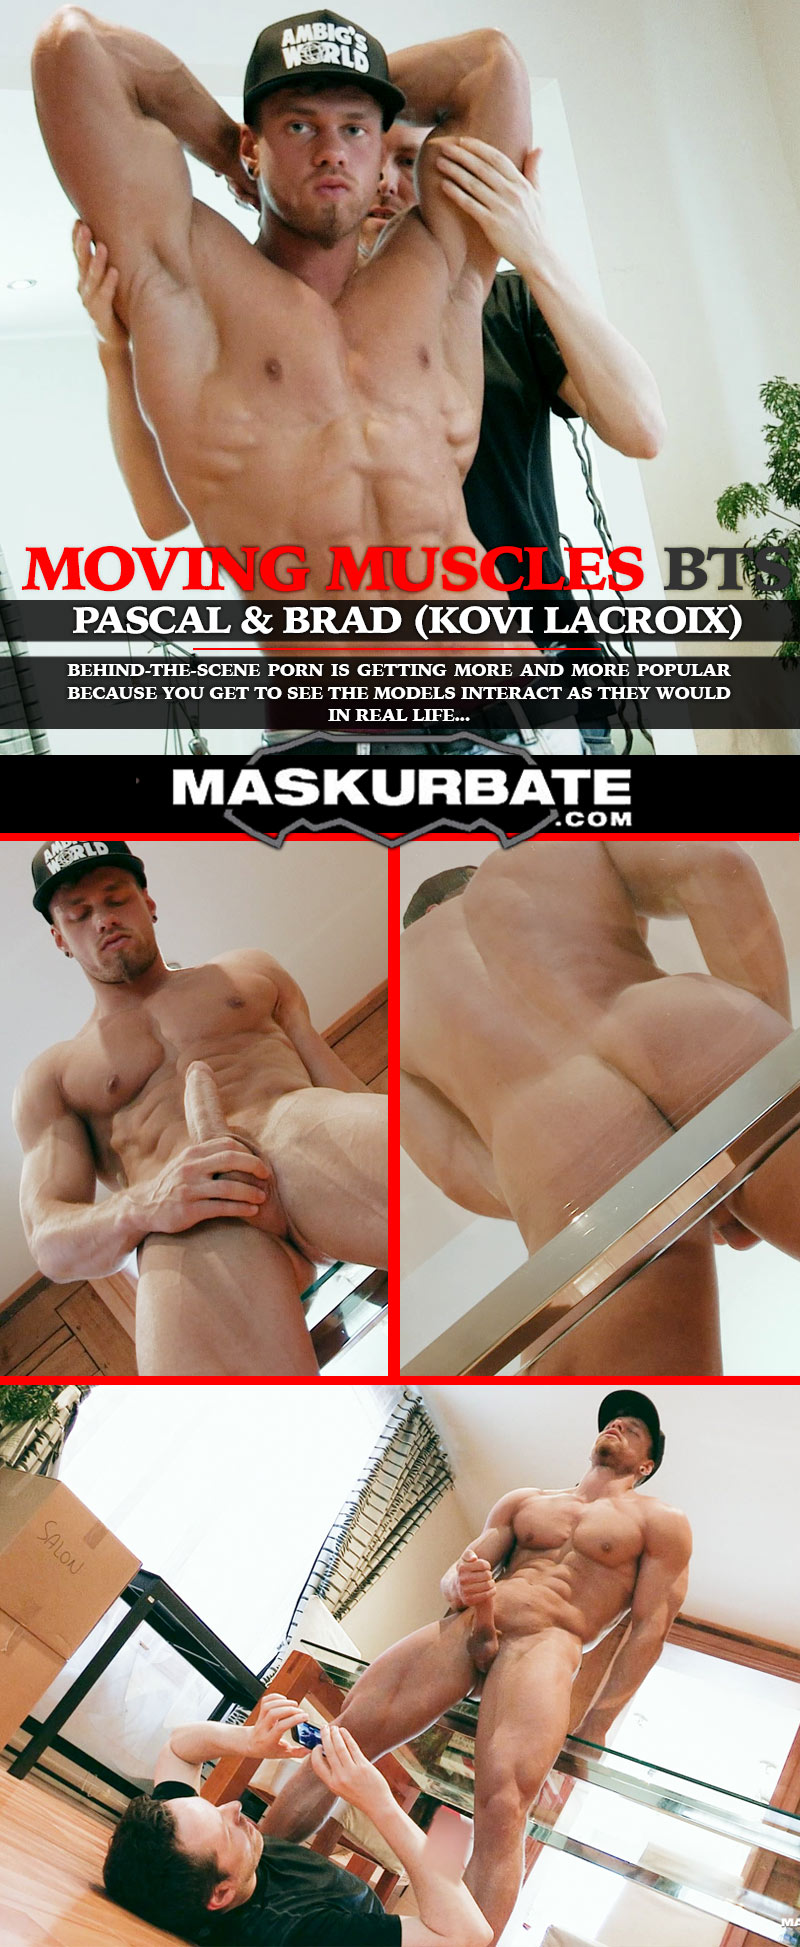 Moving Muscles BTS (Brad & Pascal) at Maskurbate